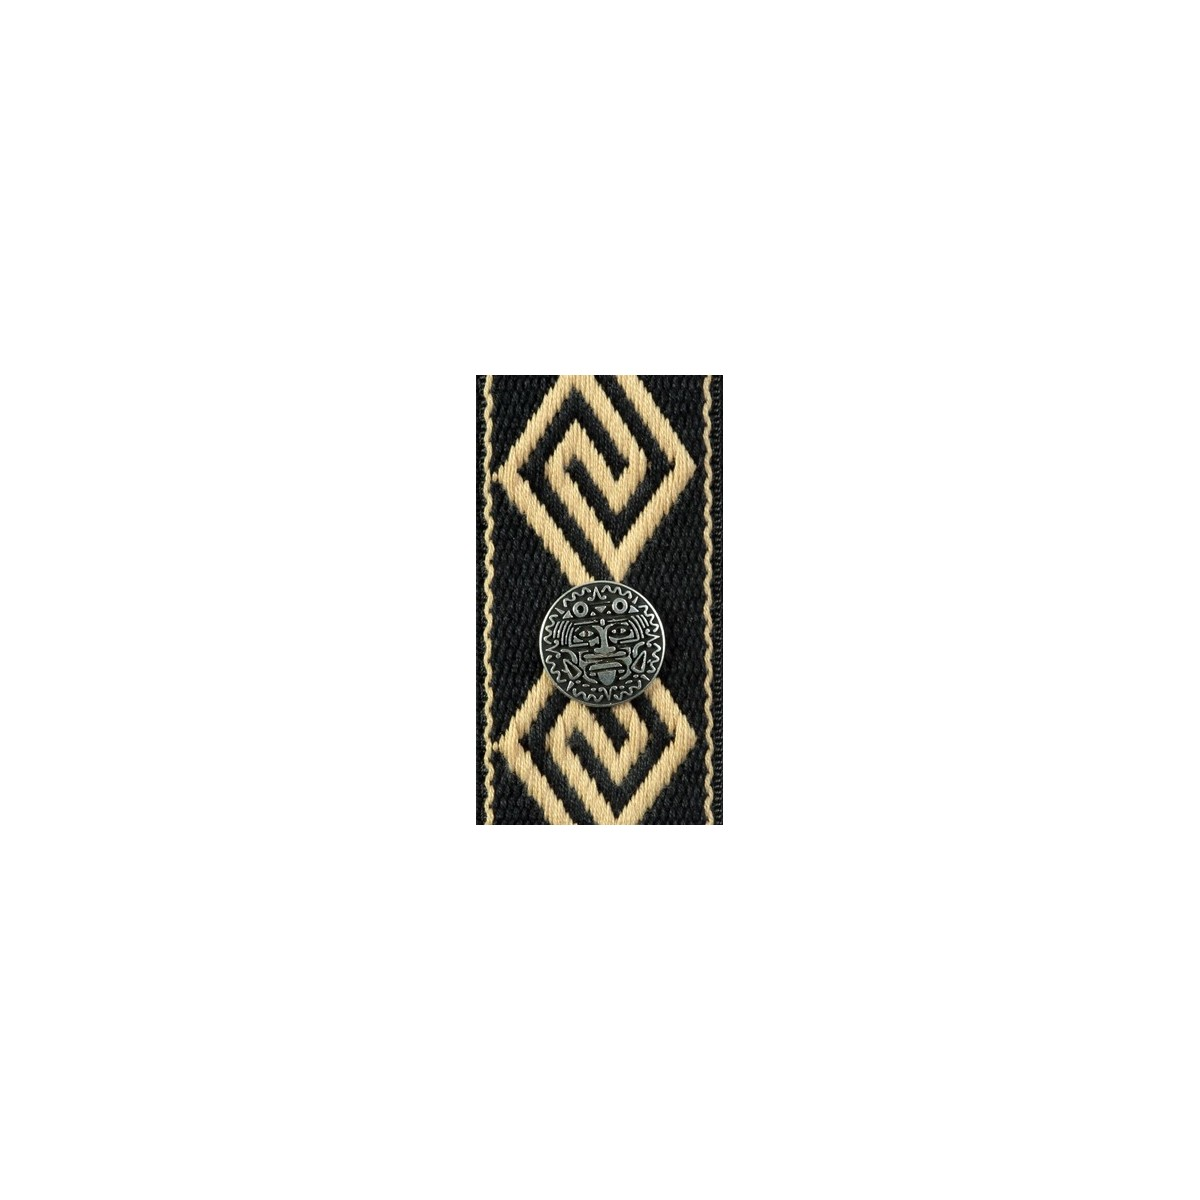 Tonepros Avt2p Wraparound Bridge Prs Gold